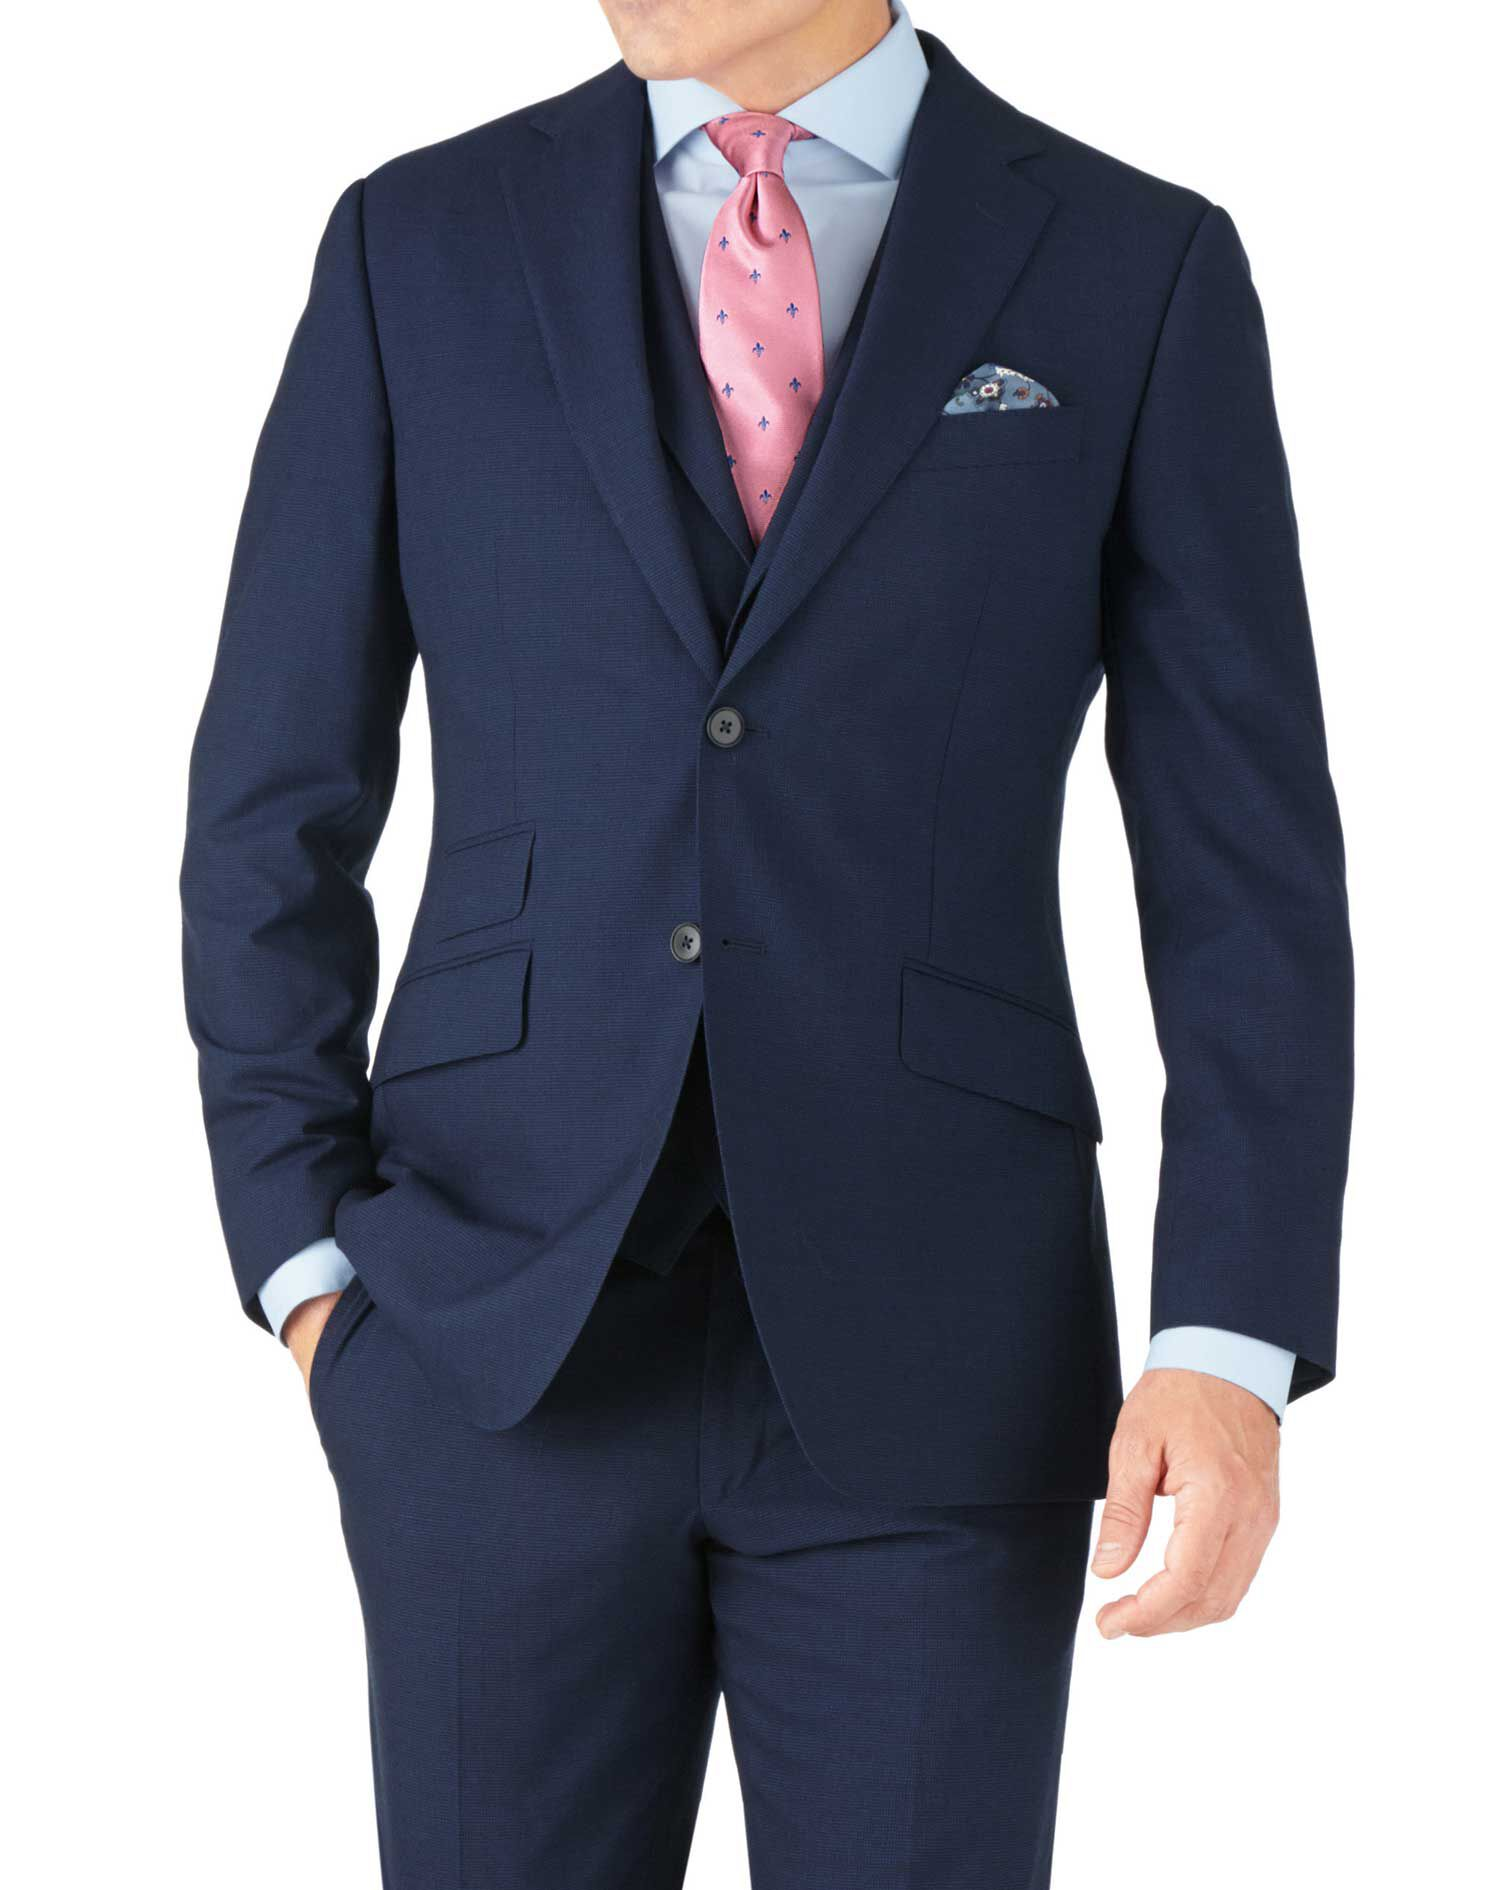 Indigo Blue Puppytooth Slim Fit Panama Business Suit Wool Jacket Size 40 Long by Charles Tyrwhitt